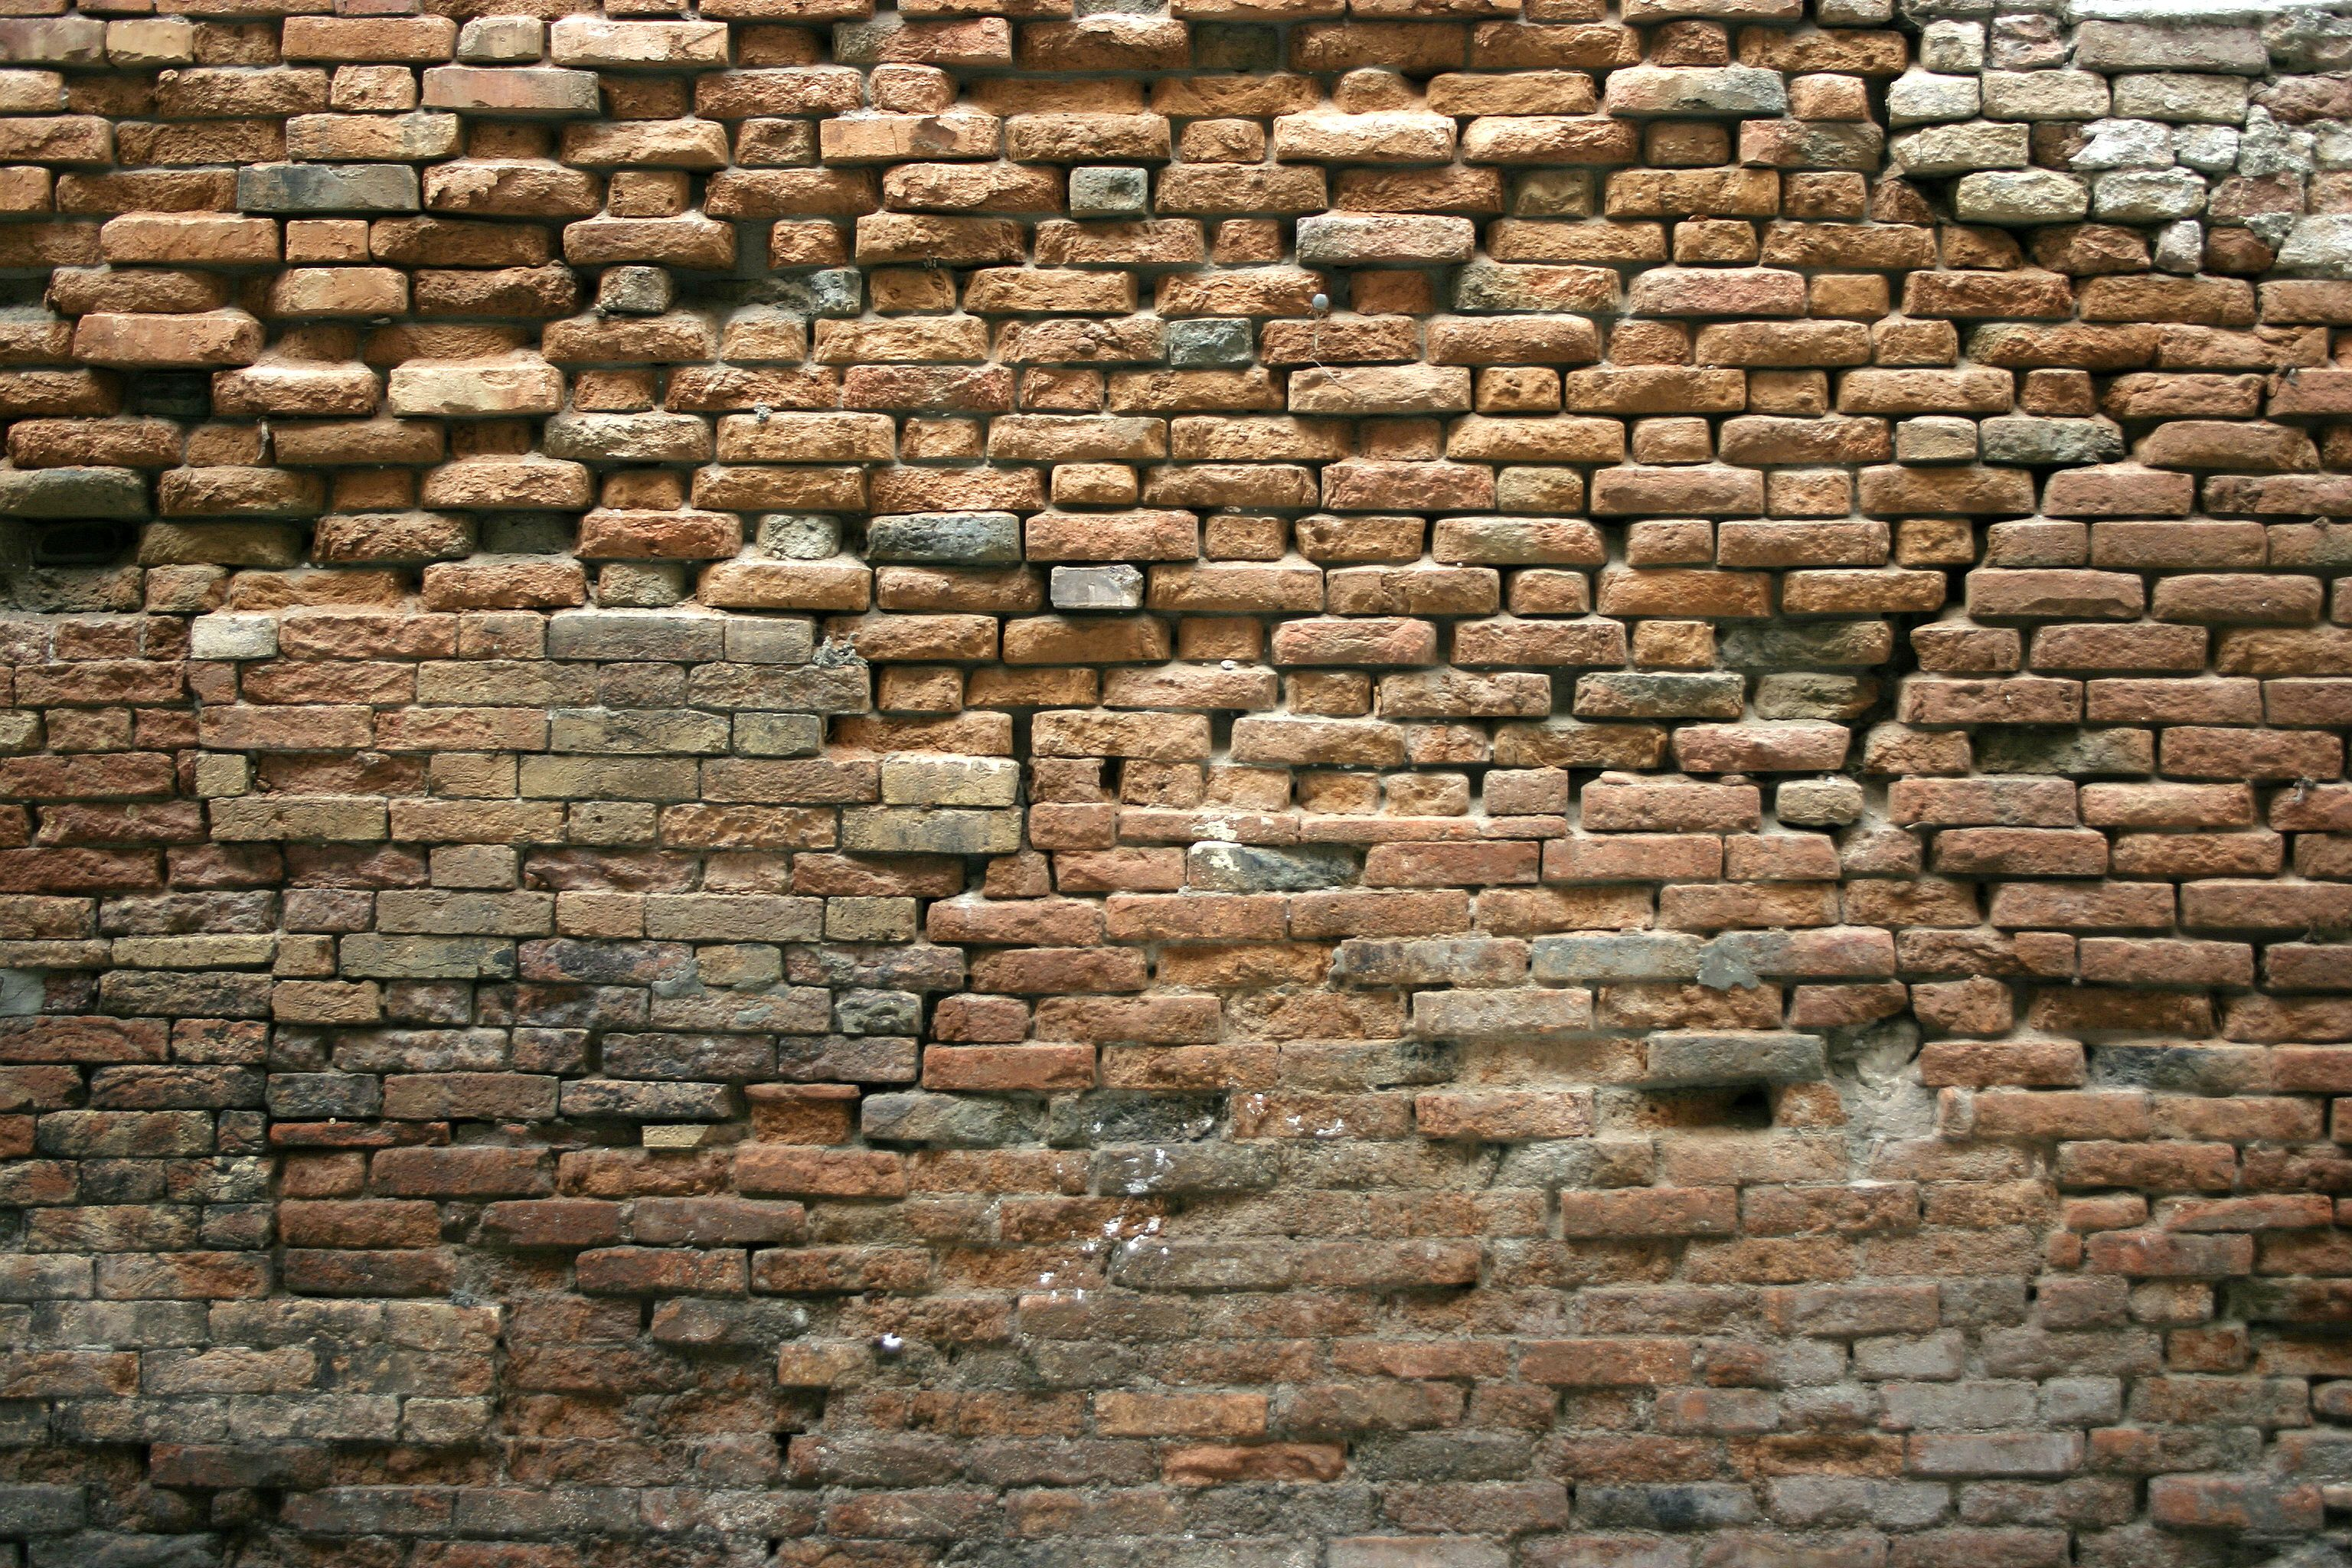 Pared de ladrillo viejo buscar con google bricks - Muros de ladrillo visto ...